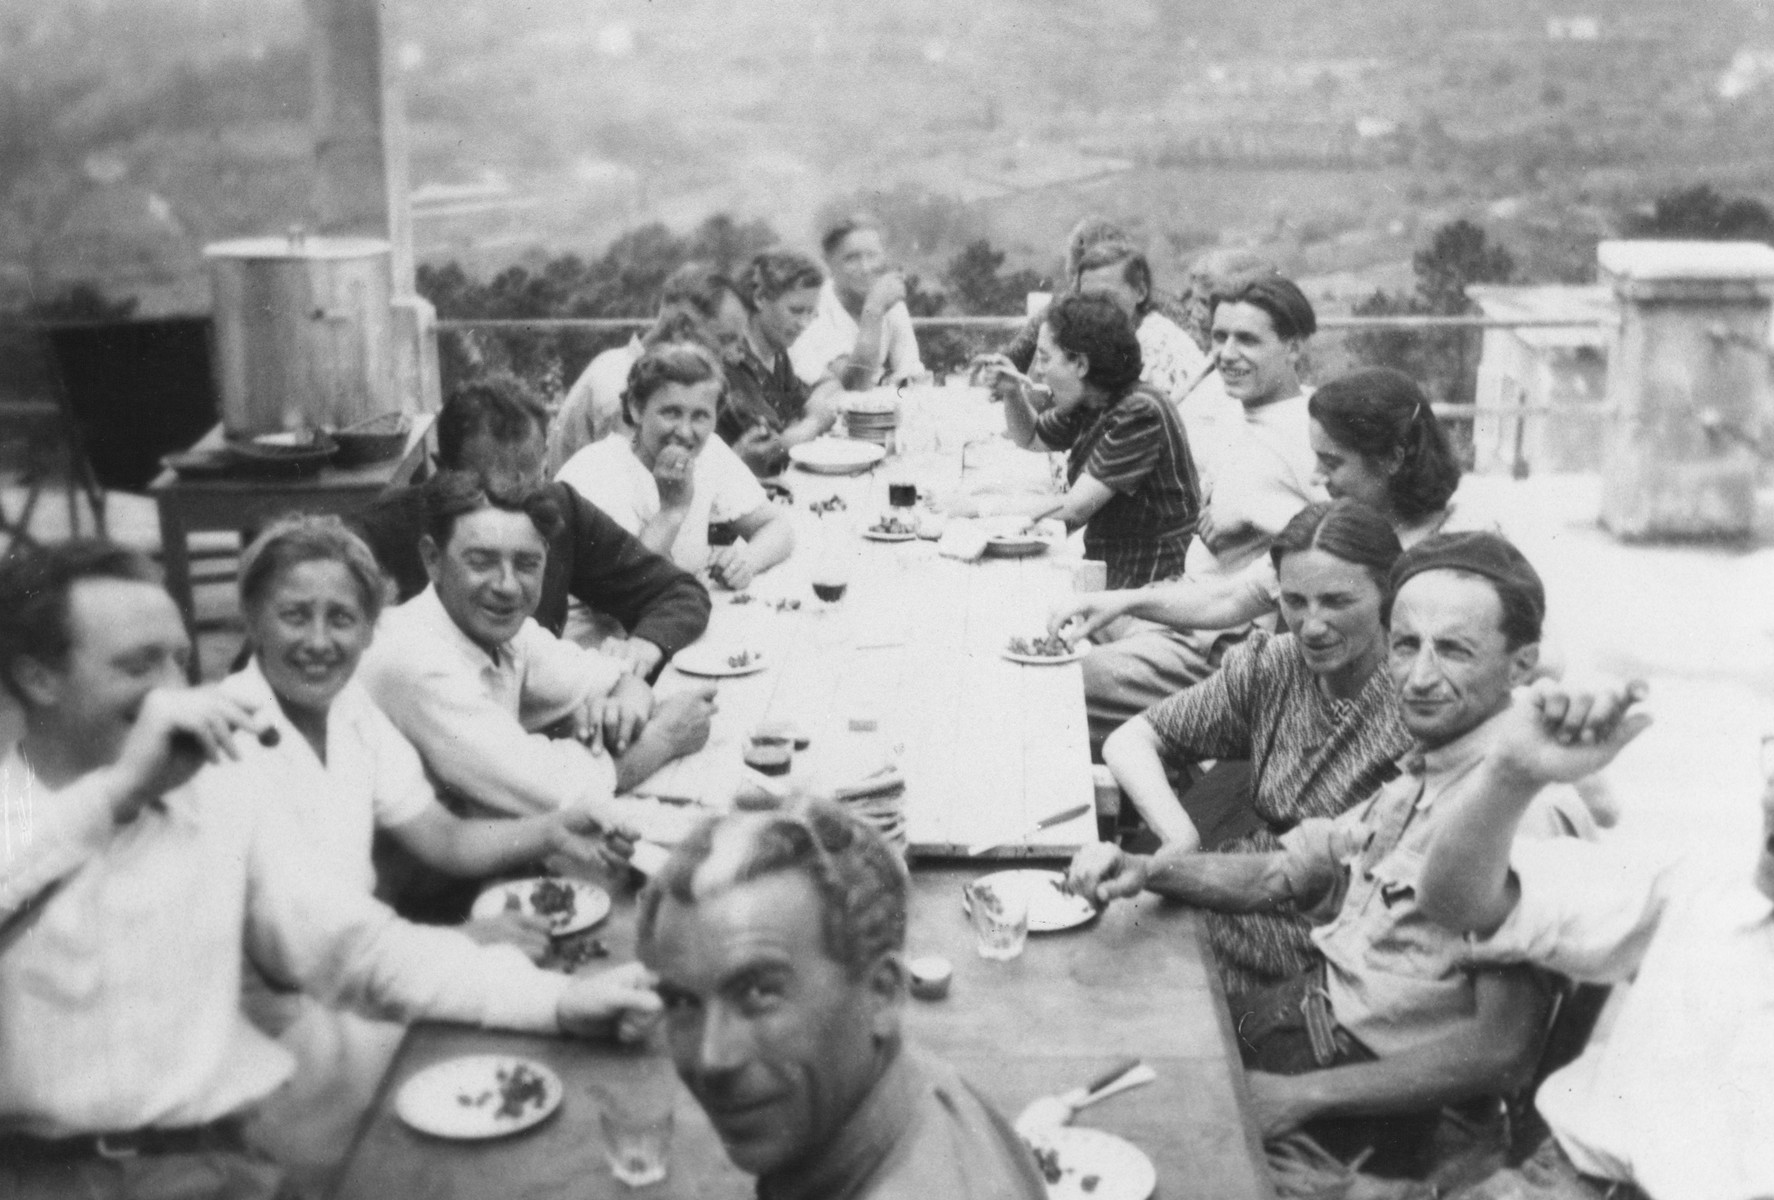 The staff of the MACE (Maison d'Accueil Chretienne pour Enfants) children's home at Vence eats a meal outside on the home's terrace.  Joseph Fisera is pictured in the front facing the camera.